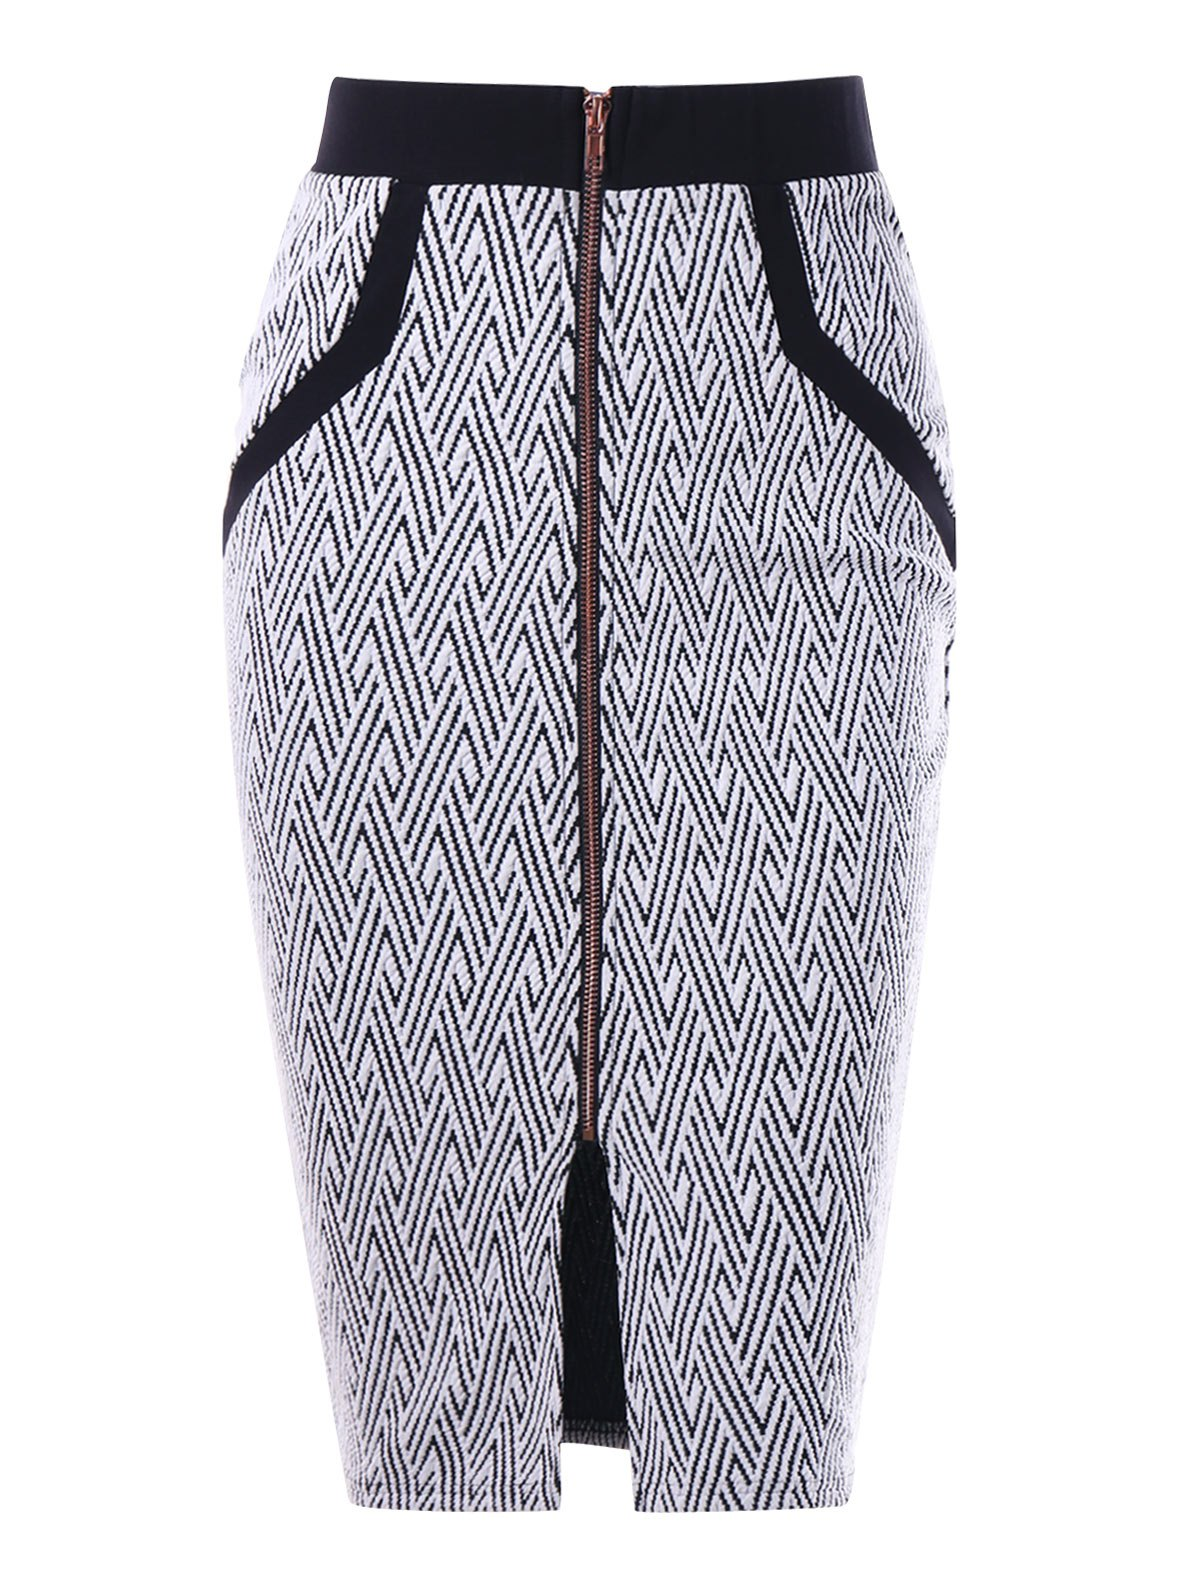 Monochrome Zip Up Pencil SkirtWOMEN<br><br>Size: XL; Color: WHITE AND BLACK; Material: Polyester,Spandex; Length: Mid-Calf; Silhouette: Sheath; Pattern Type: Others; Season: Fall,Spring; Weight: 0.2500kg; Package Contents: 1 x Skirt;